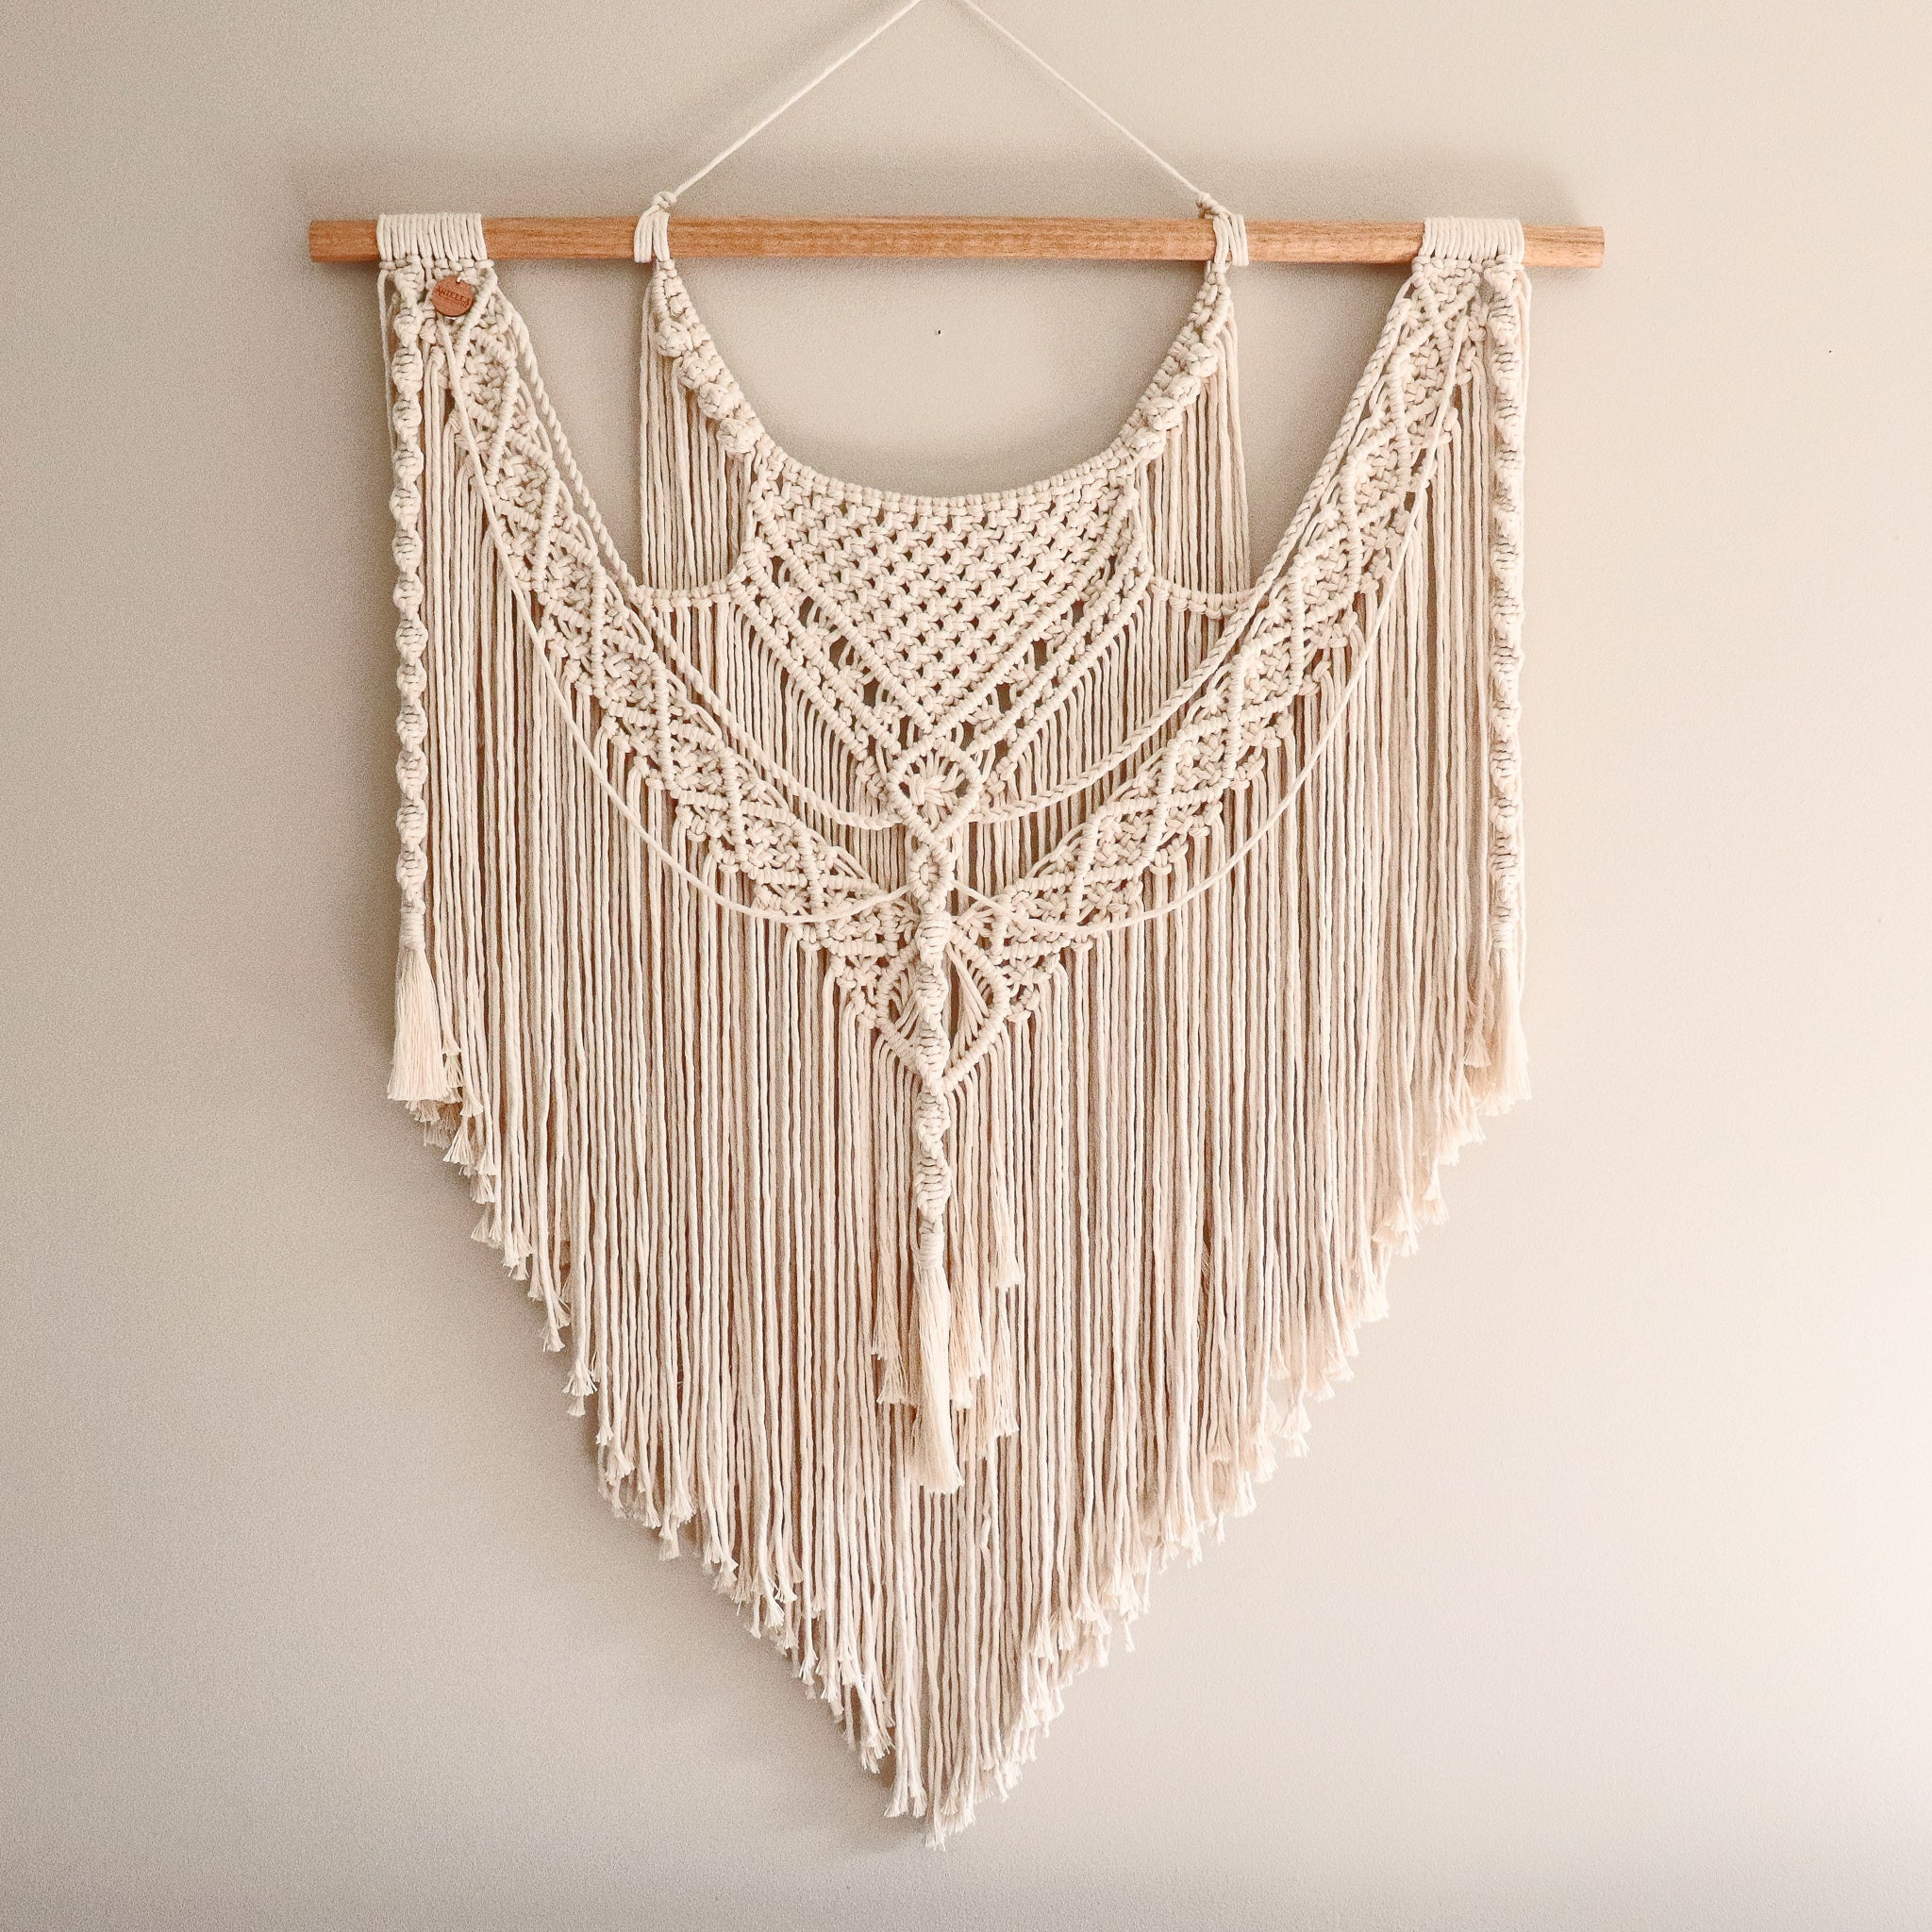 Aphrodite || Made to Order Wall Hanging